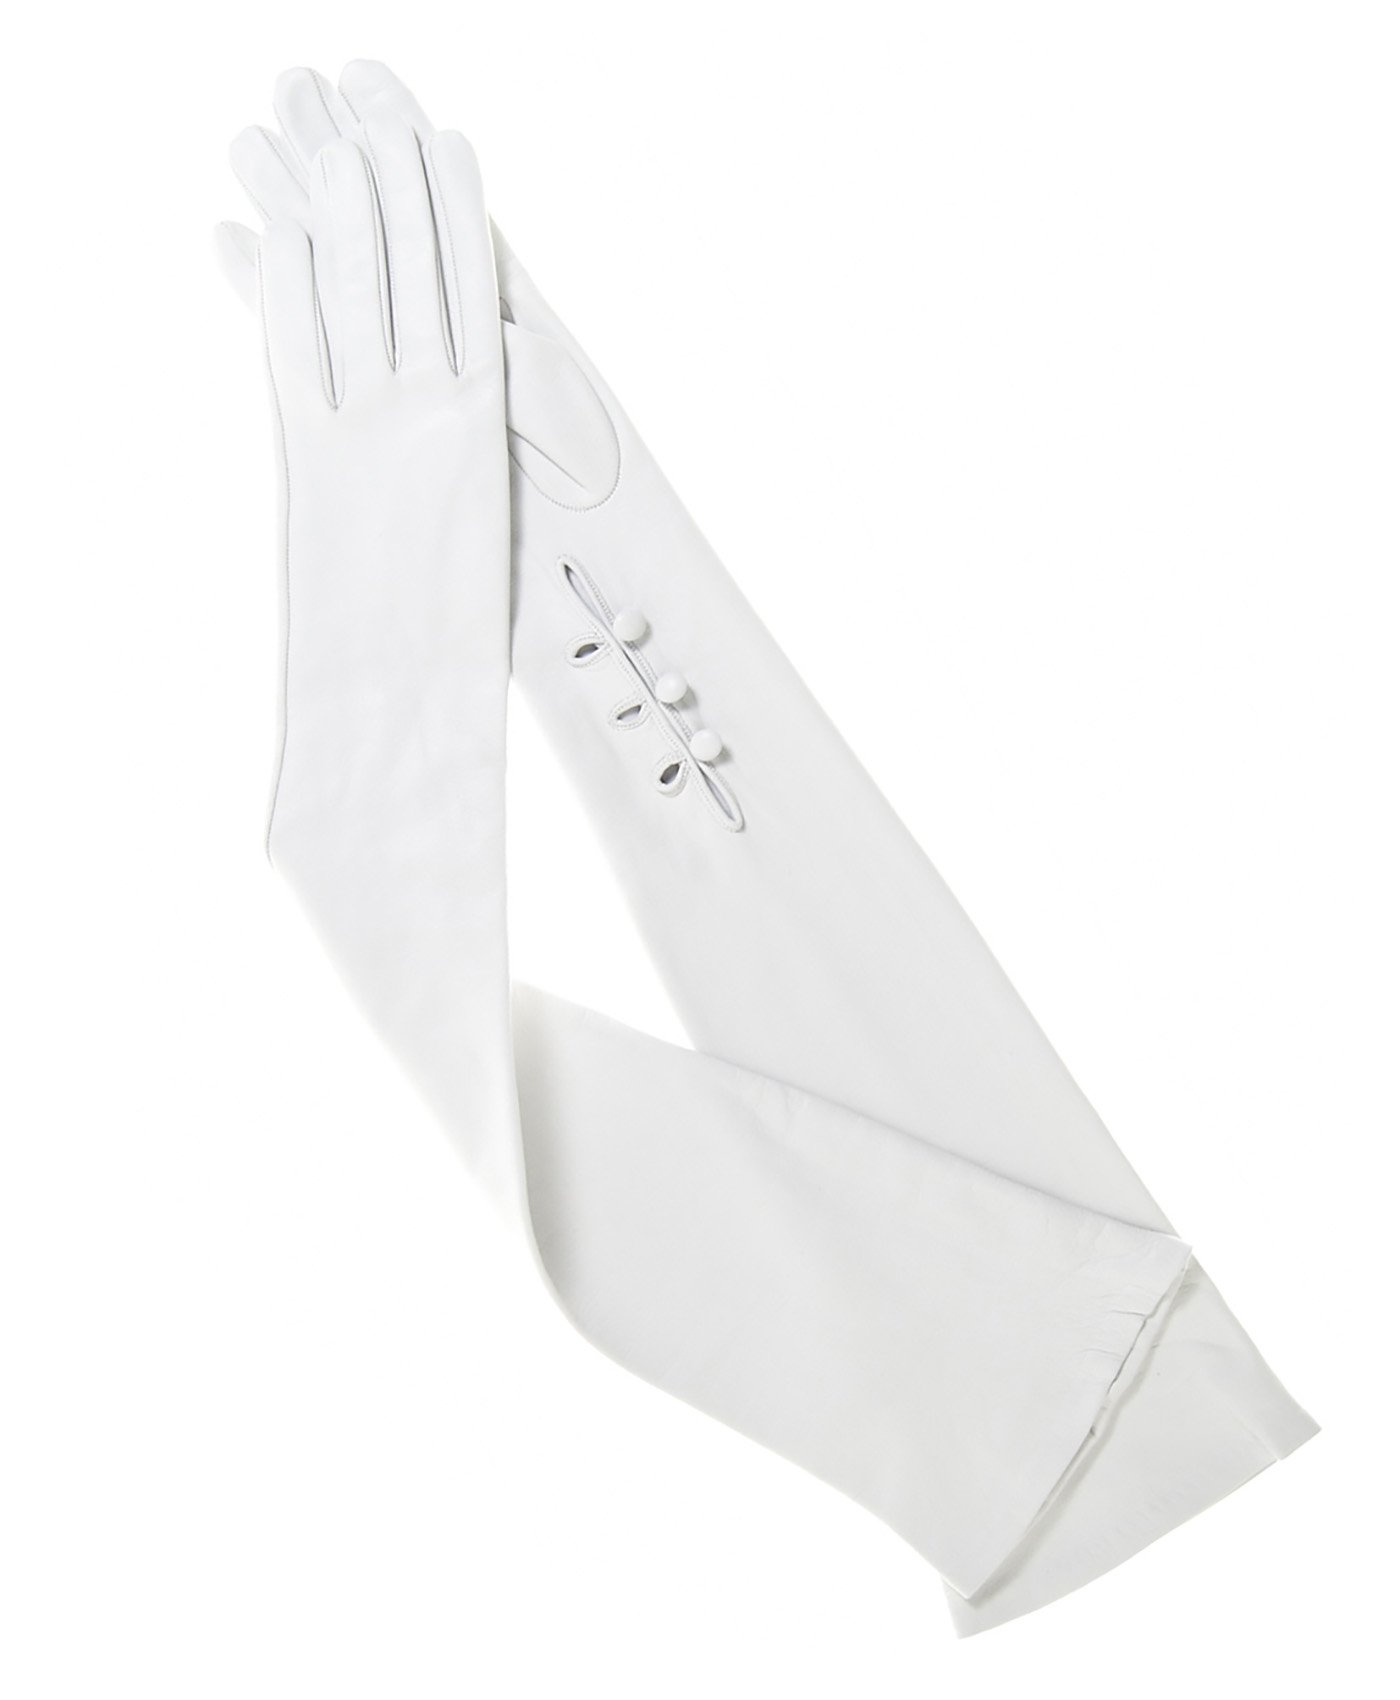 Fratelli Orsini Women's Italian Silk Lined 12-Button Length Bridal Gloves Size 7 Color Ivory